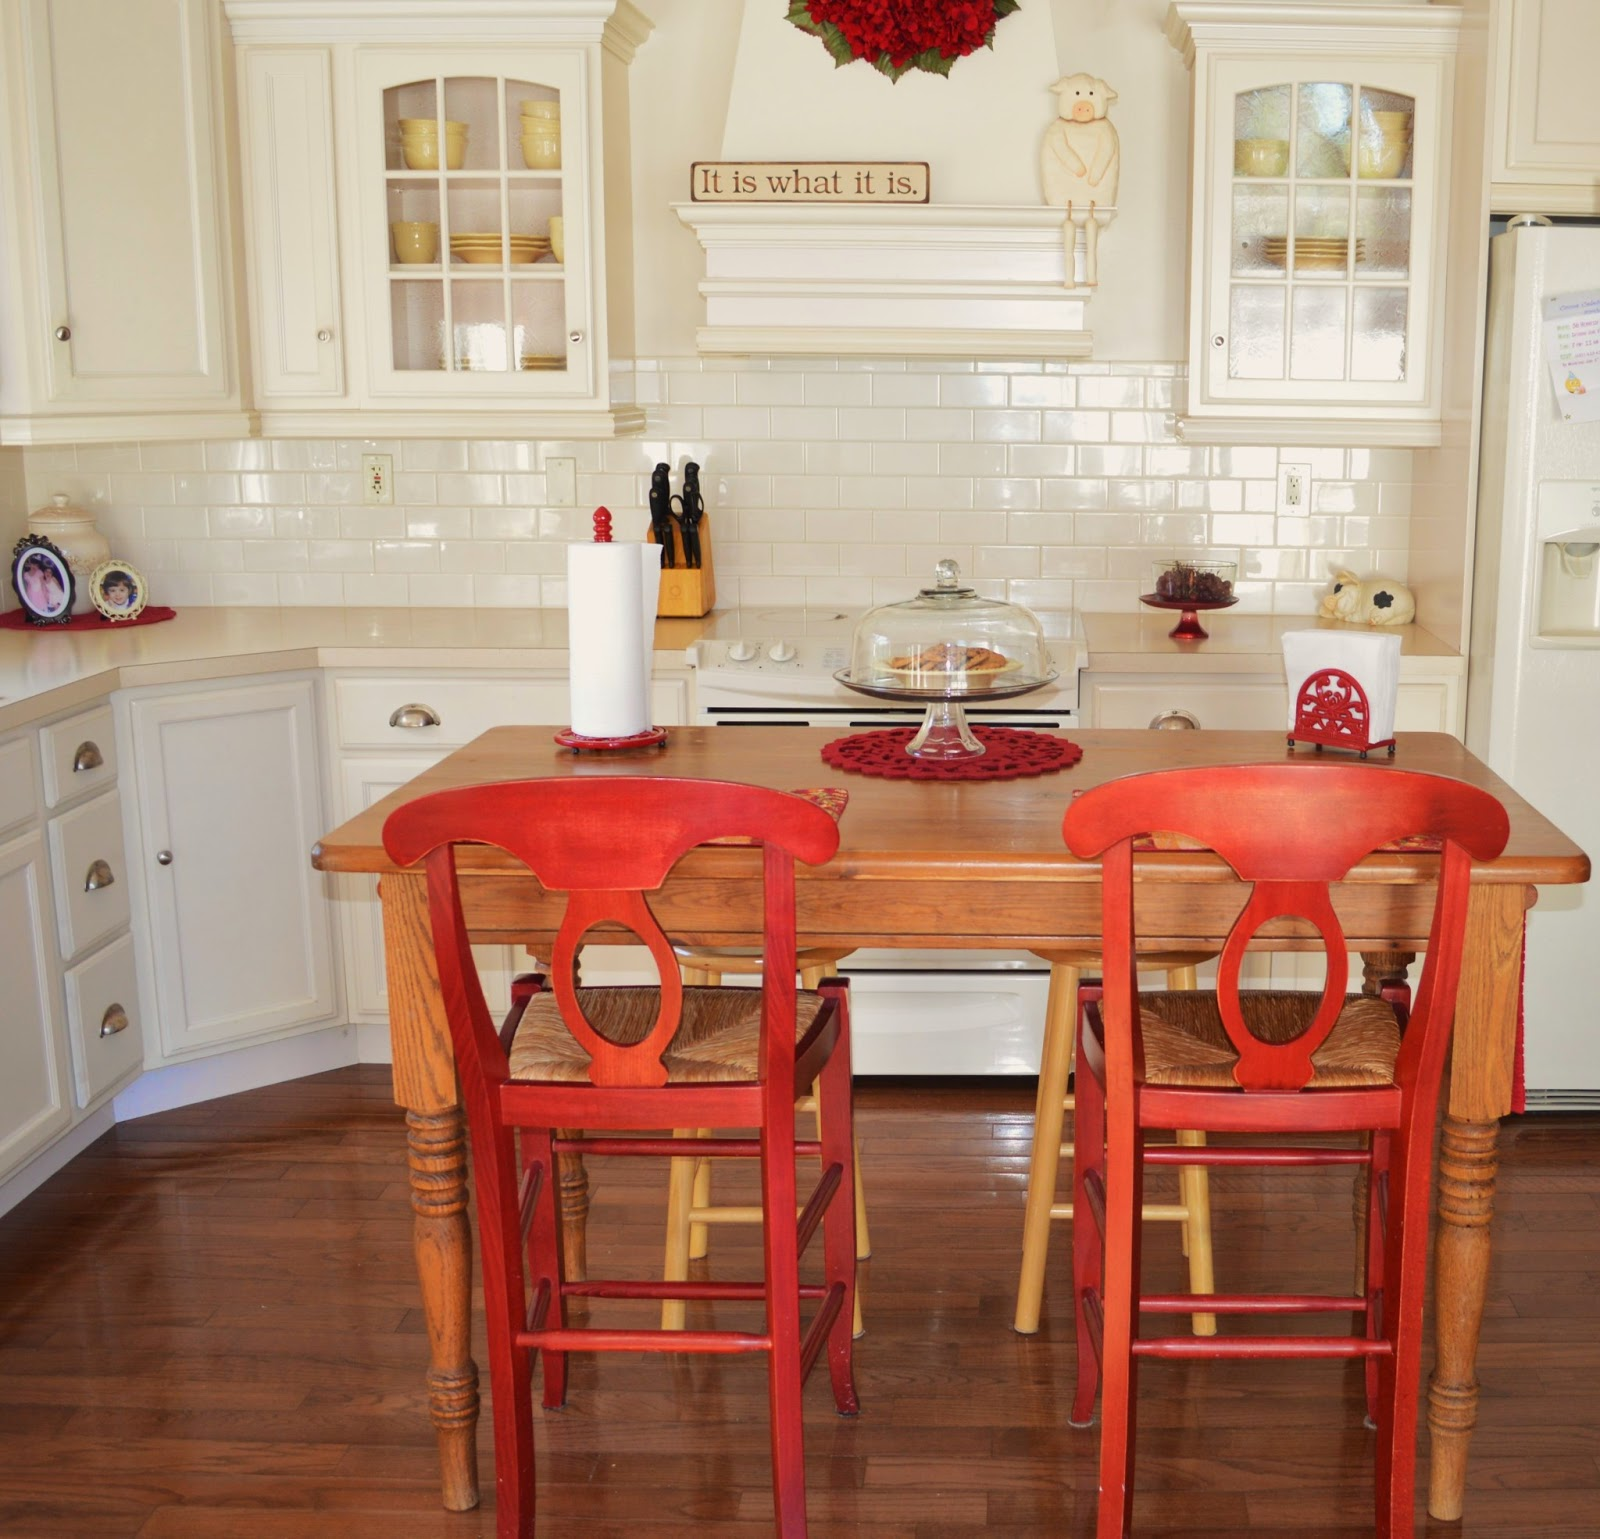 Farmhouse Table As Kitchen Island: How To Redecorate For Free In The Middle Of The Night